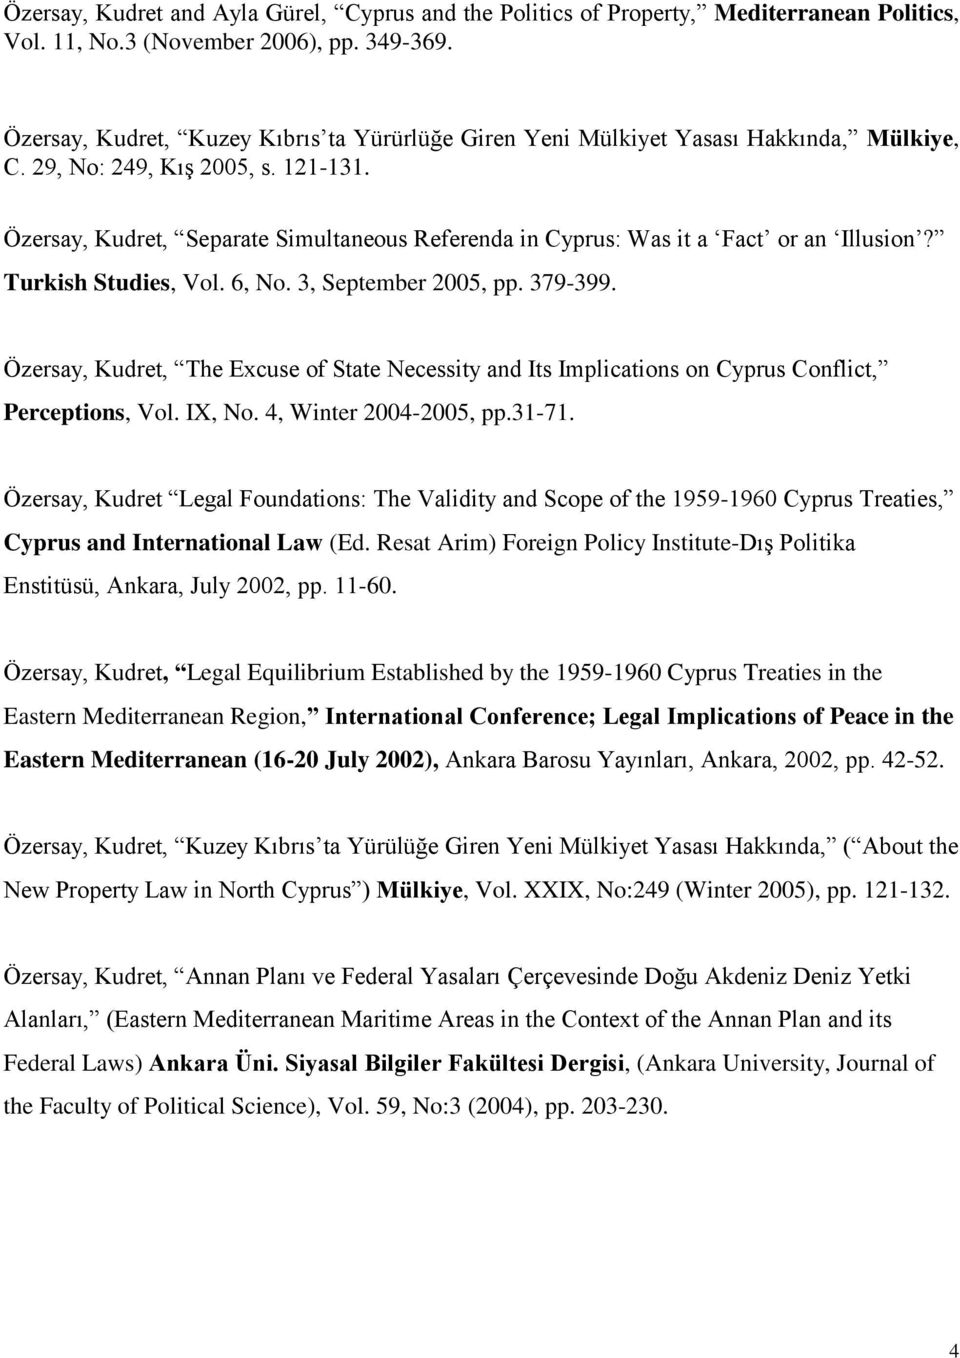 Özersay, Kudret, Separate Simultaneous Referenda in Cyprus: Was it a Fact or an Illusion? Turkish Studies, Vol. 6, No. 3, September 2005, pp. 379-399.